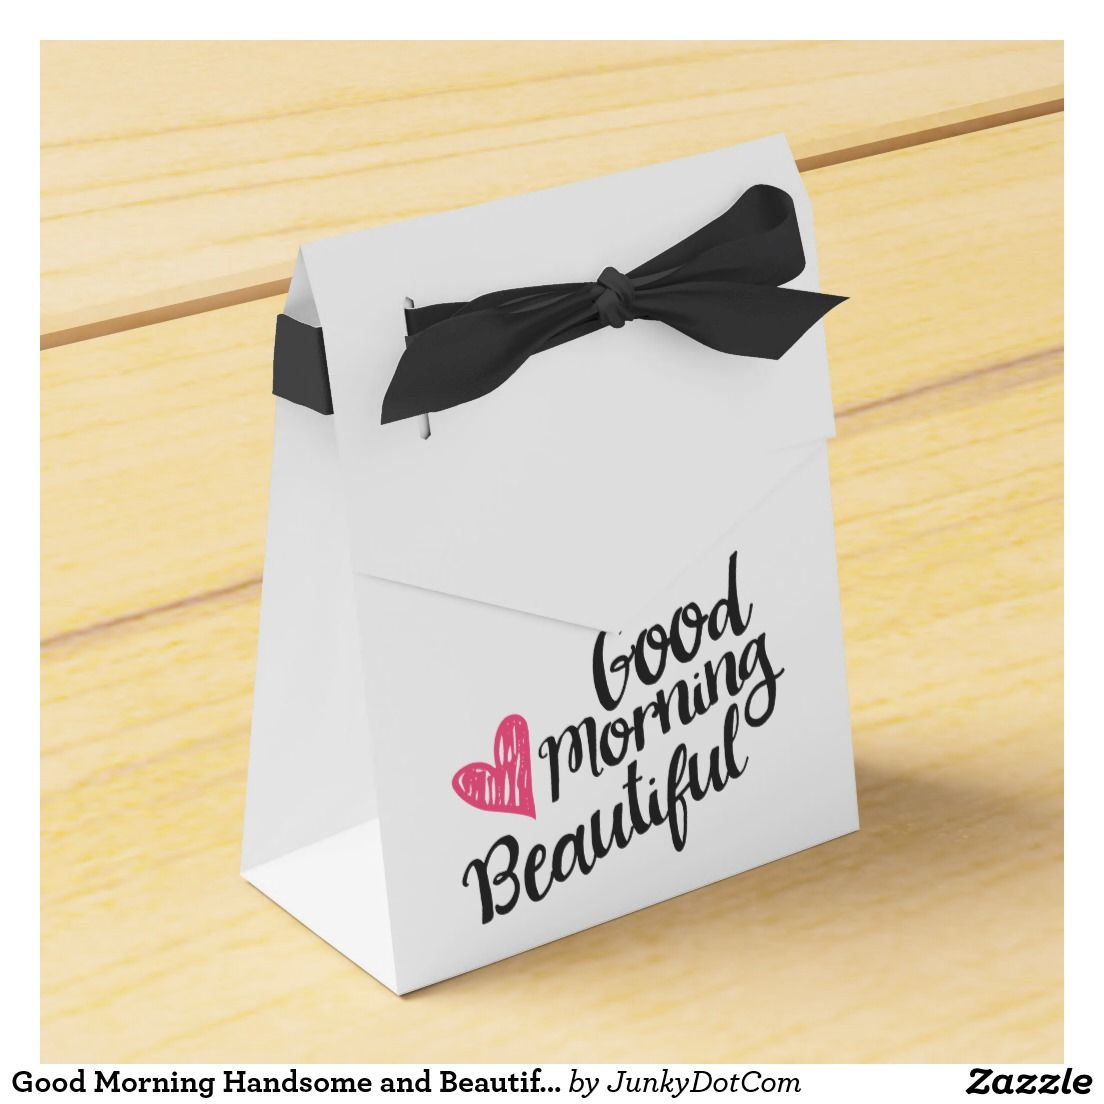 Good Morning Handsome and Beautiful Script Favor Box   Pinterest ...